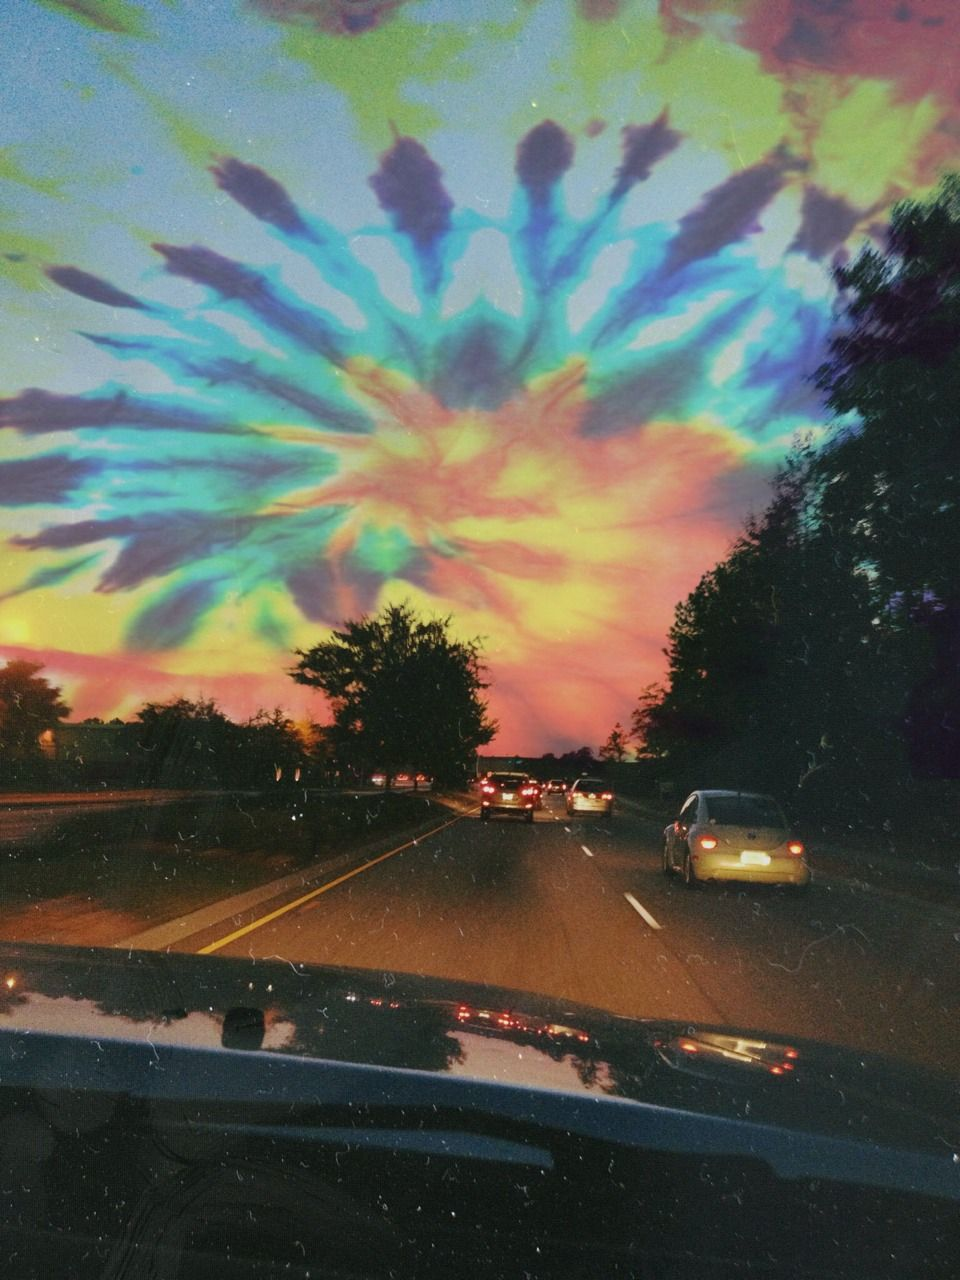 Tumblr tie dye iphone wallpaper - Wallpaper